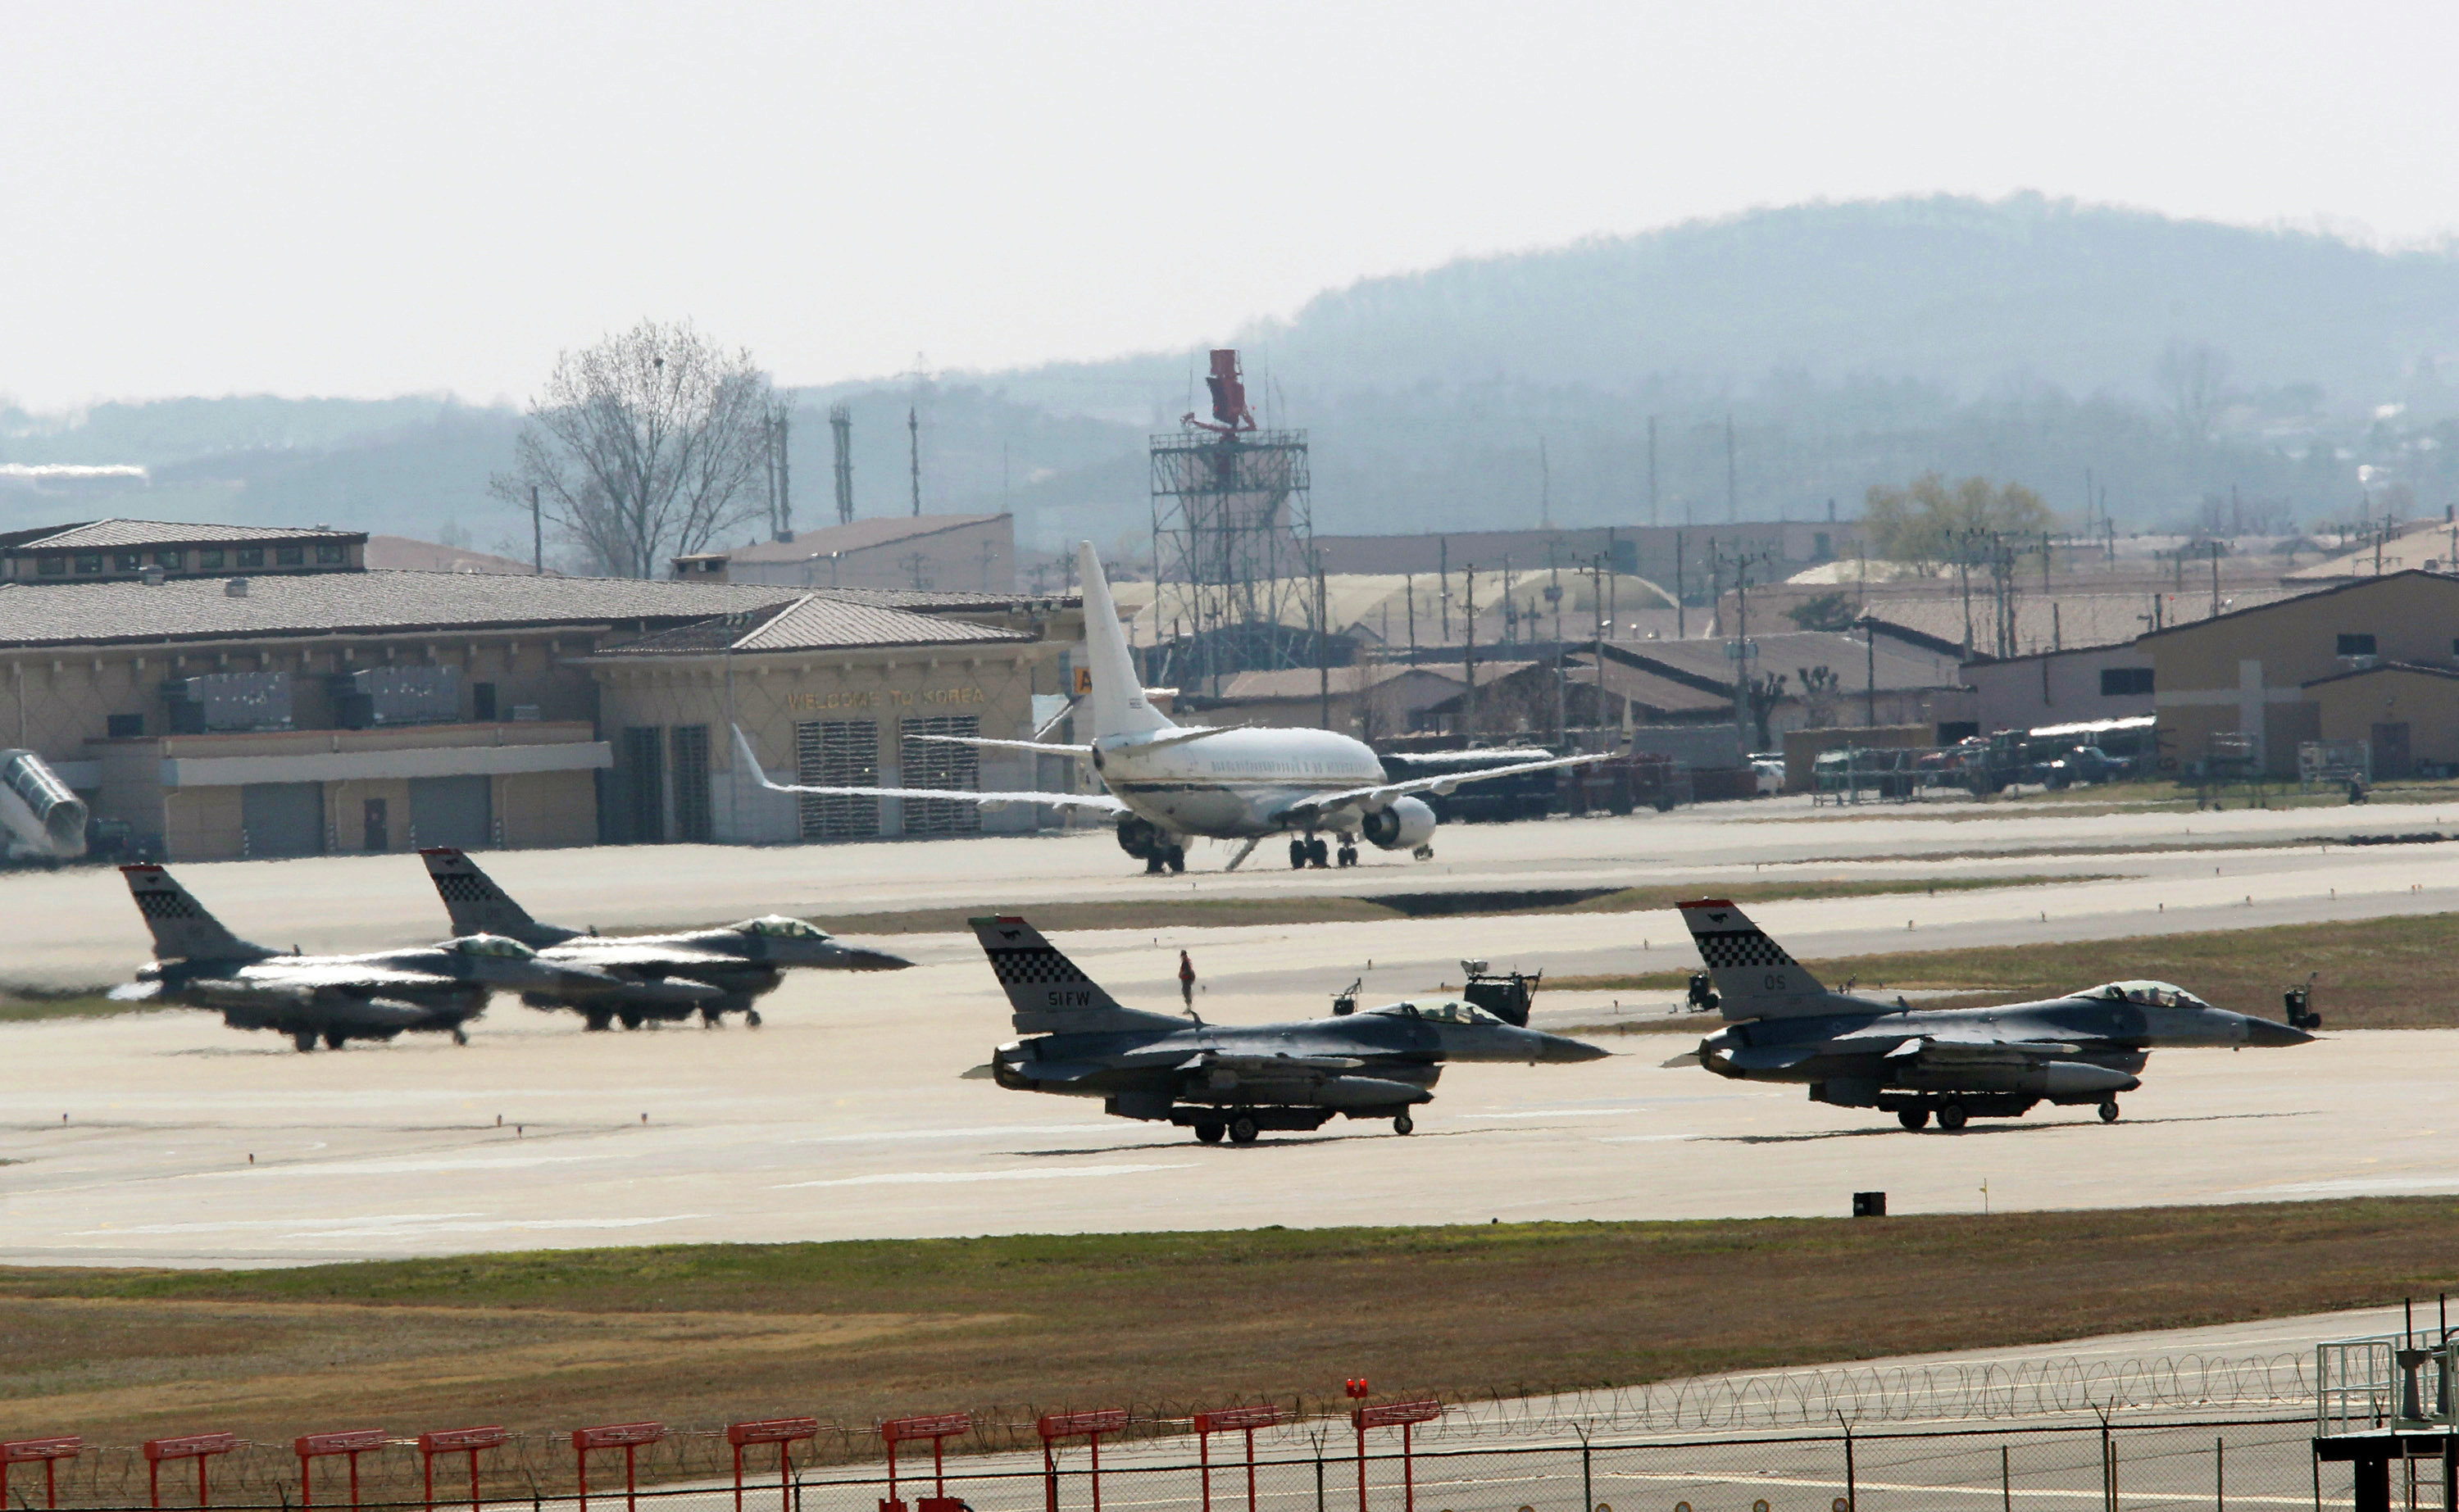 © AP Photo/ Ahn Young-joon U.S. Air Force F-16 fighter jets wait to take off from a runway during a military exercise at the Osan U.S. Air Base in Osan, South Korea